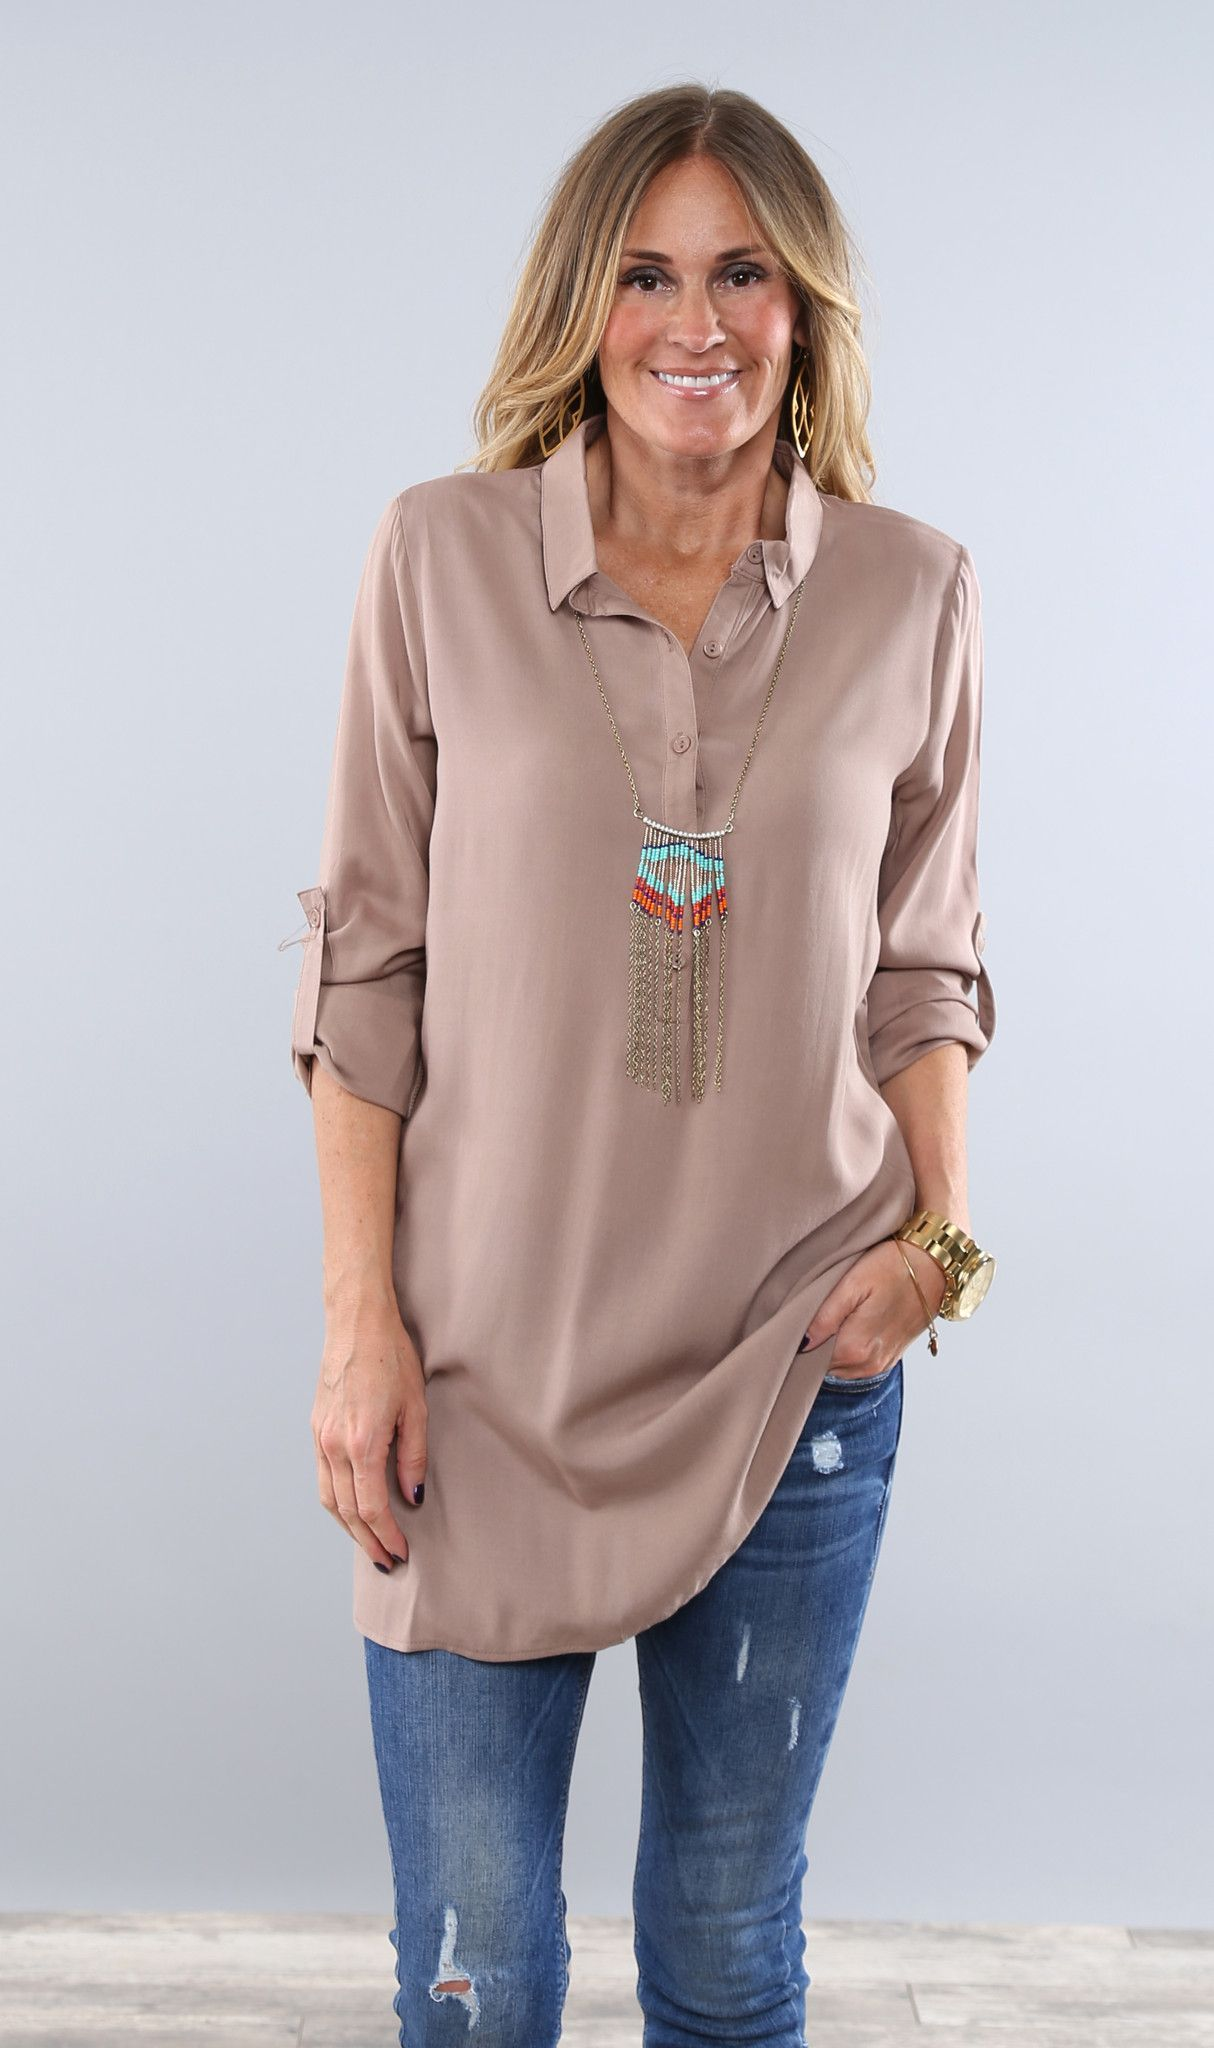 4b377059177 This is the perfect everyday dress shirt! You can wear it alone with denims  or leggings. But you can also dress it up with a necklace or scarf!